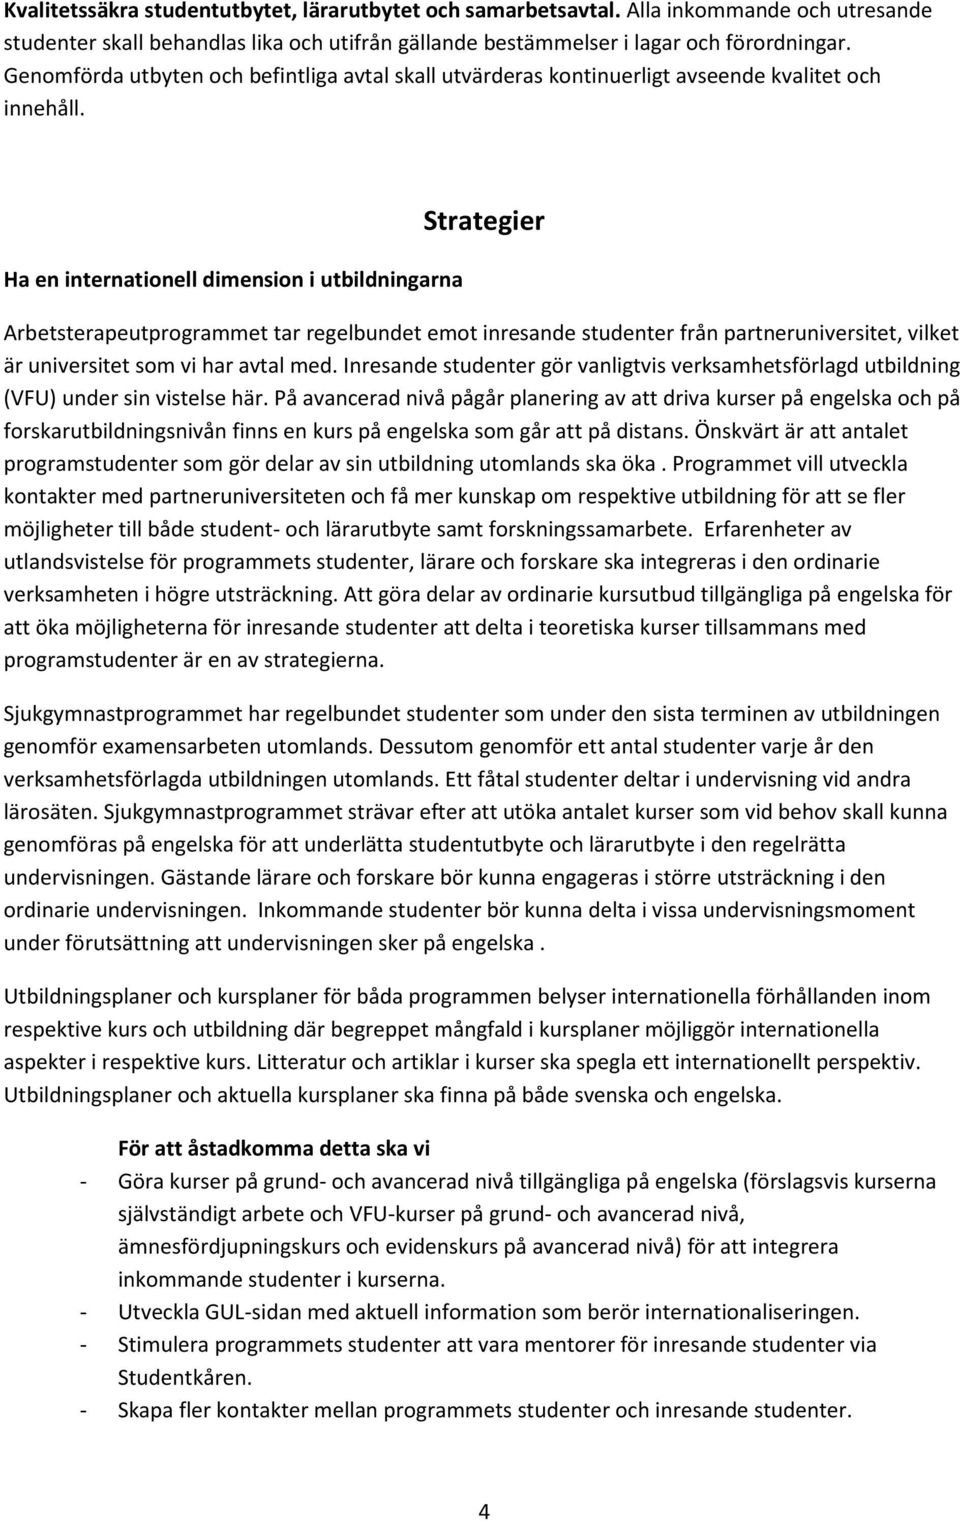 Ha en internationell dimension i utbildningarna Strategier Arbetsterapeutprogrammet tar regelbundet emot inresande studenter från partneruniversitet, vilket är universitet som vi har avtal med.